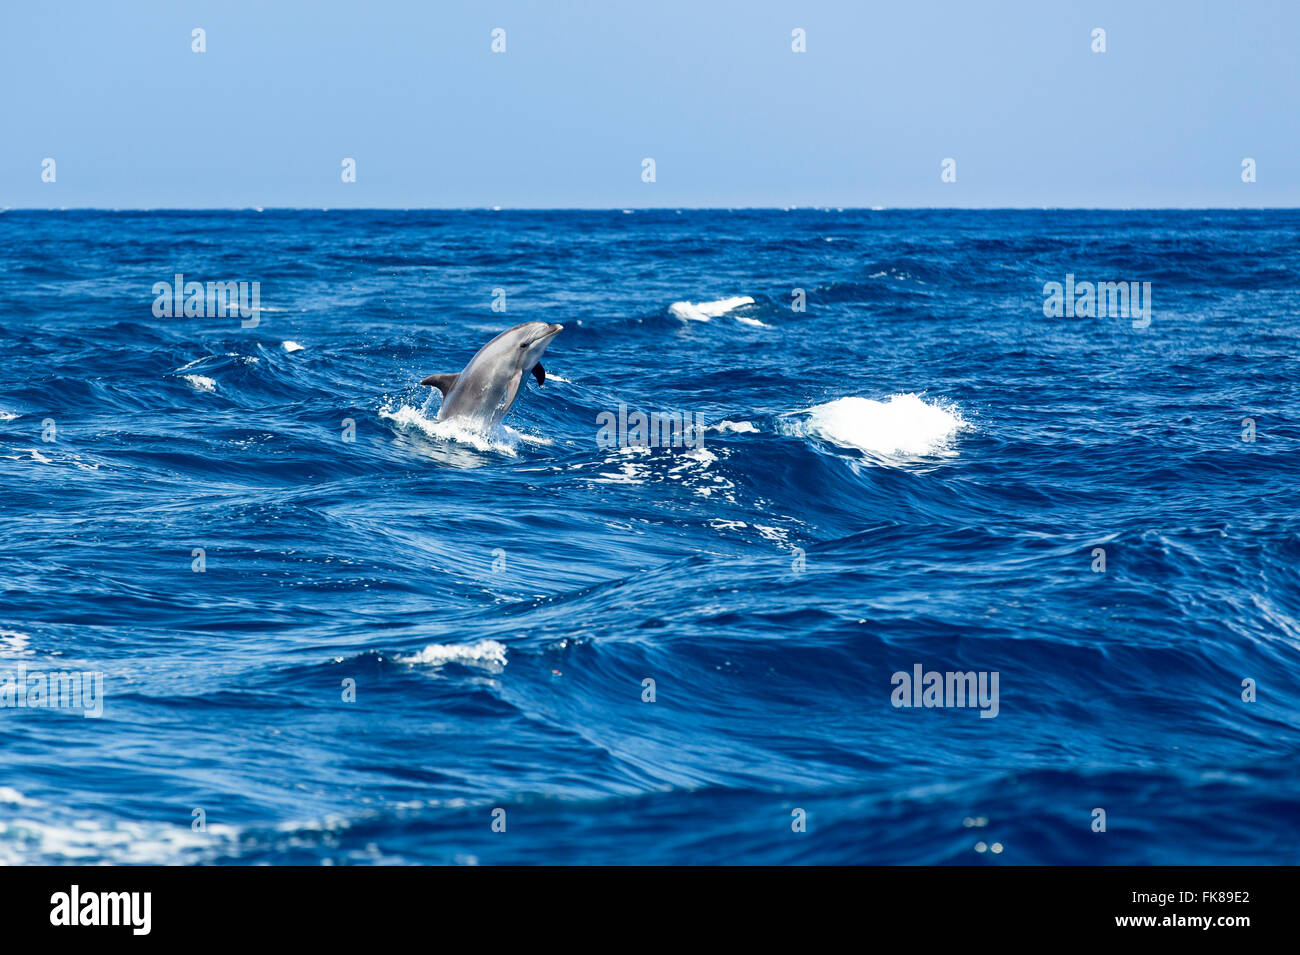 Bottlenose dolphin (Tursiops truncatus) jumping out of the water at Los Gigantes, Atlantic, Tenerife, Canary Islands, - Stock Image